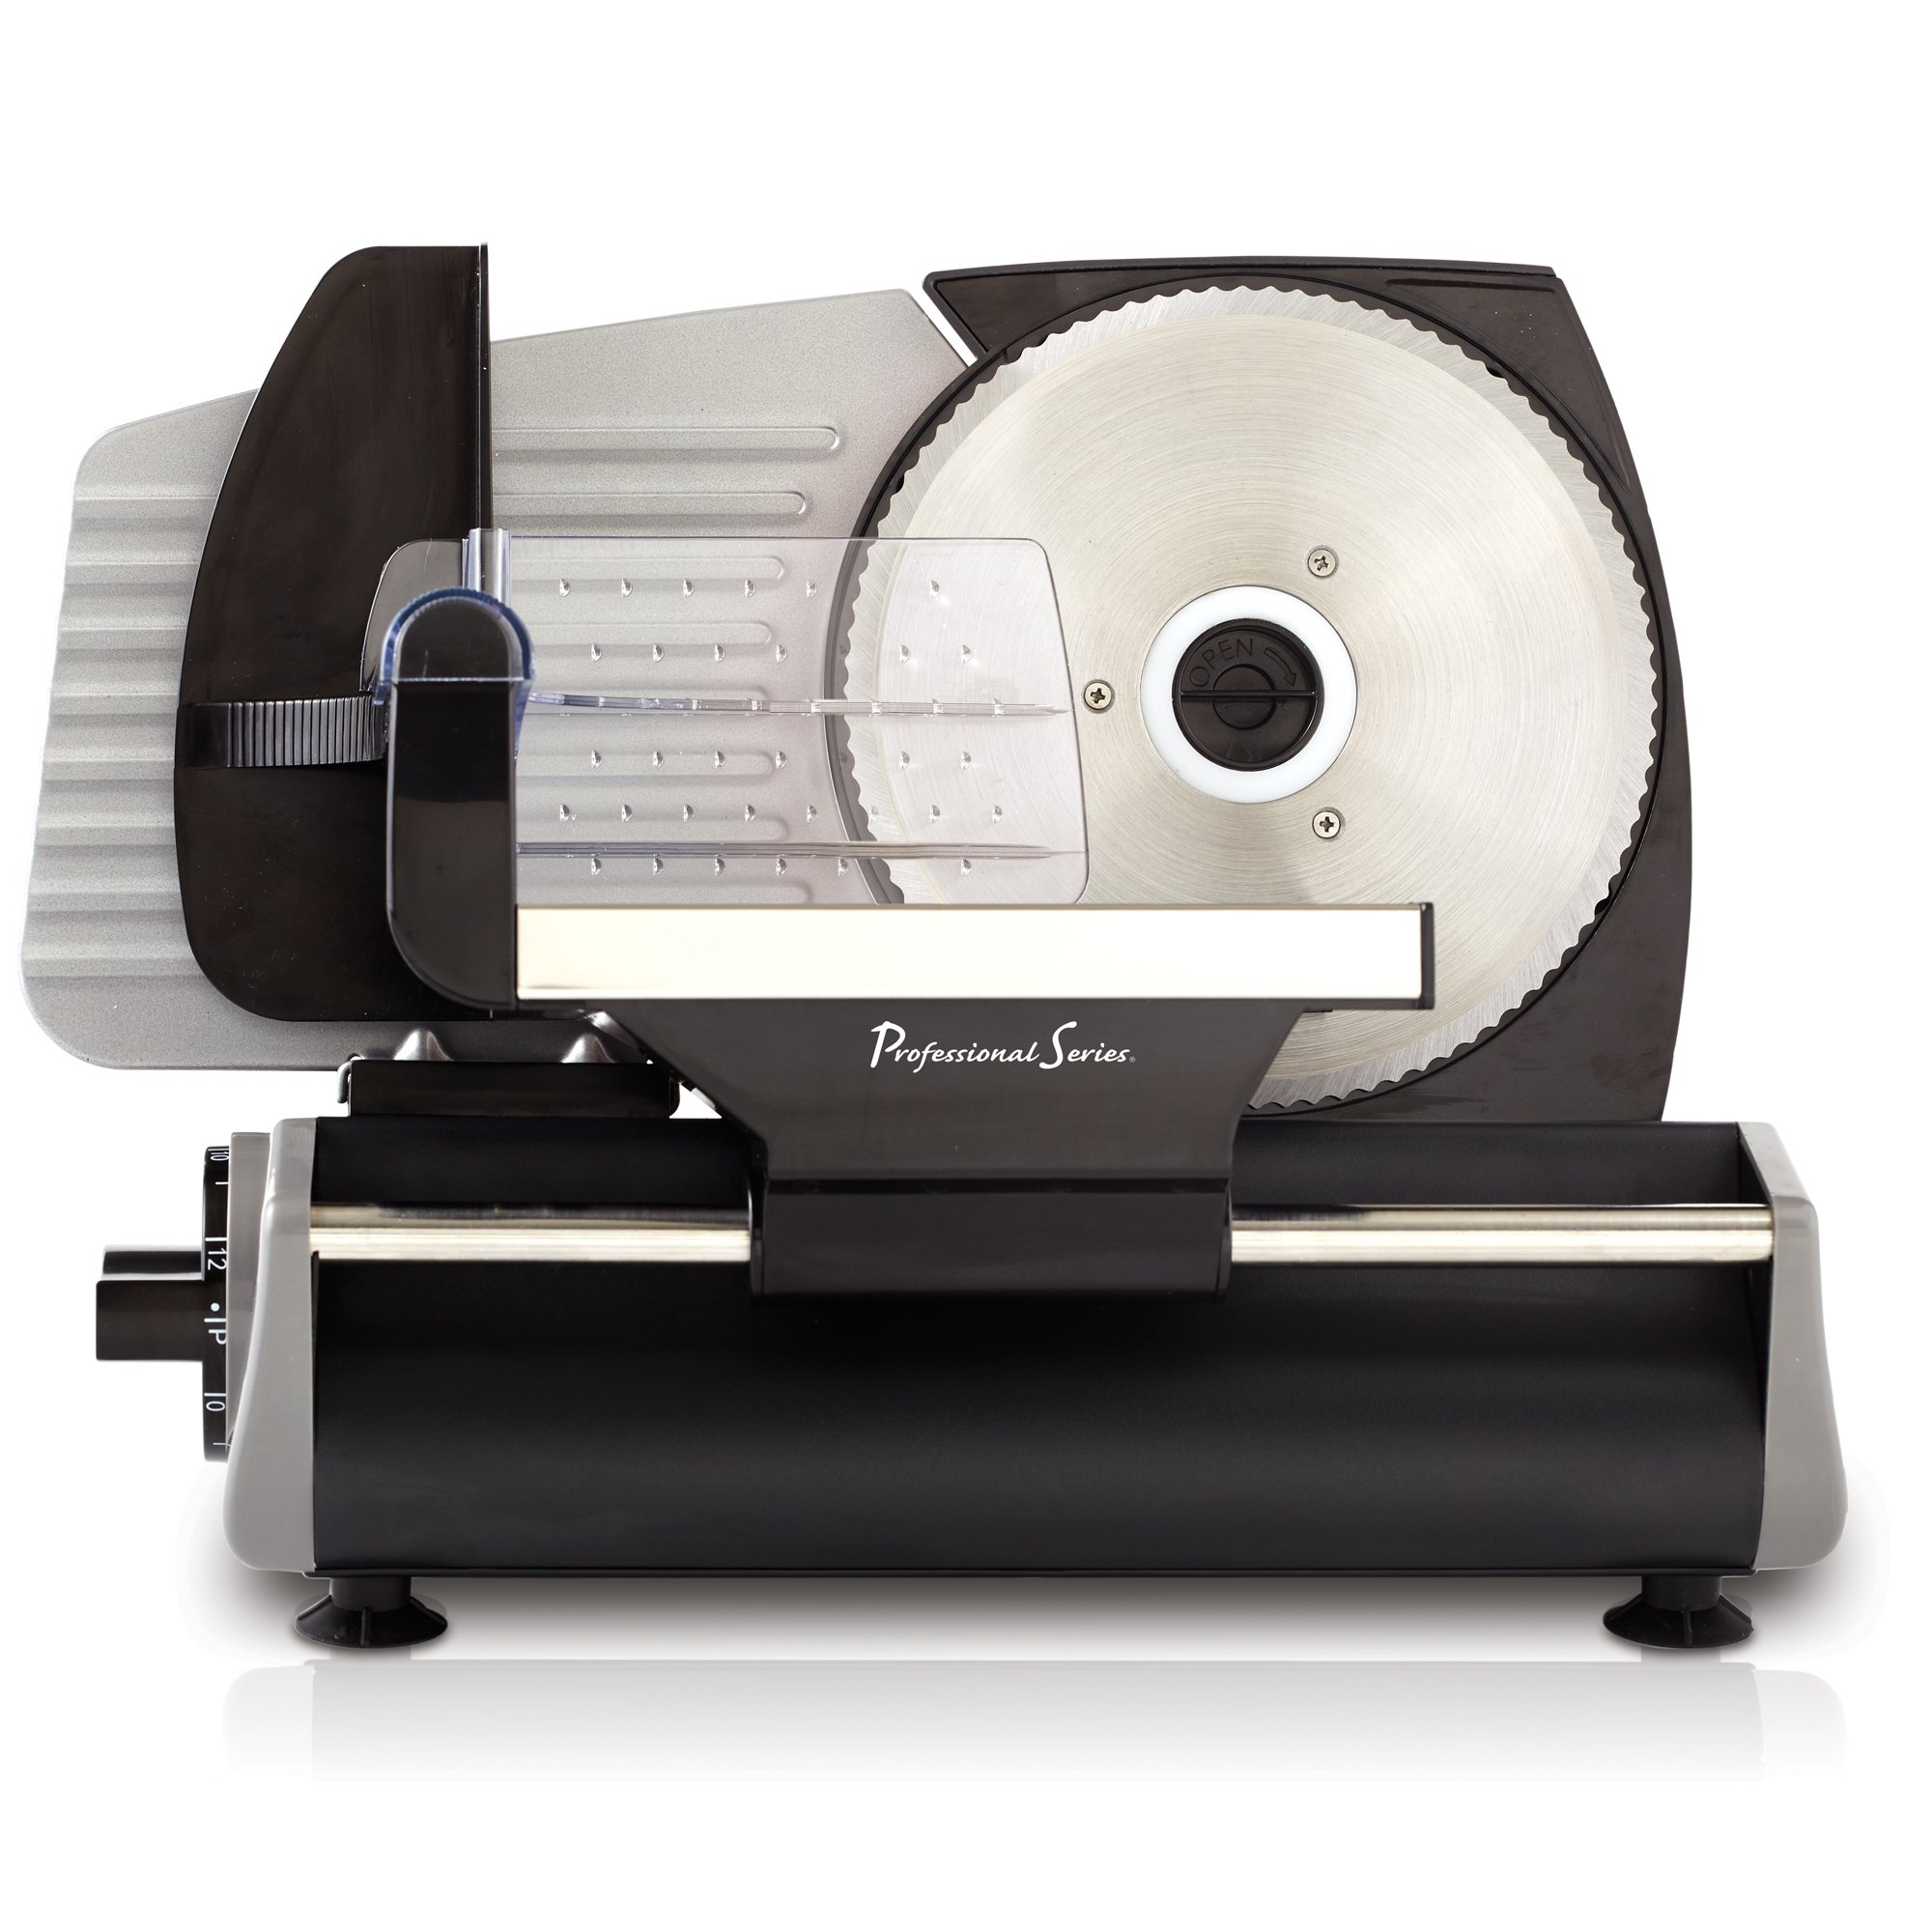 Continental Electric PS77711 Pro Series Meat Slicer, Smooth Blade, Stainless Steel by Continental Electric